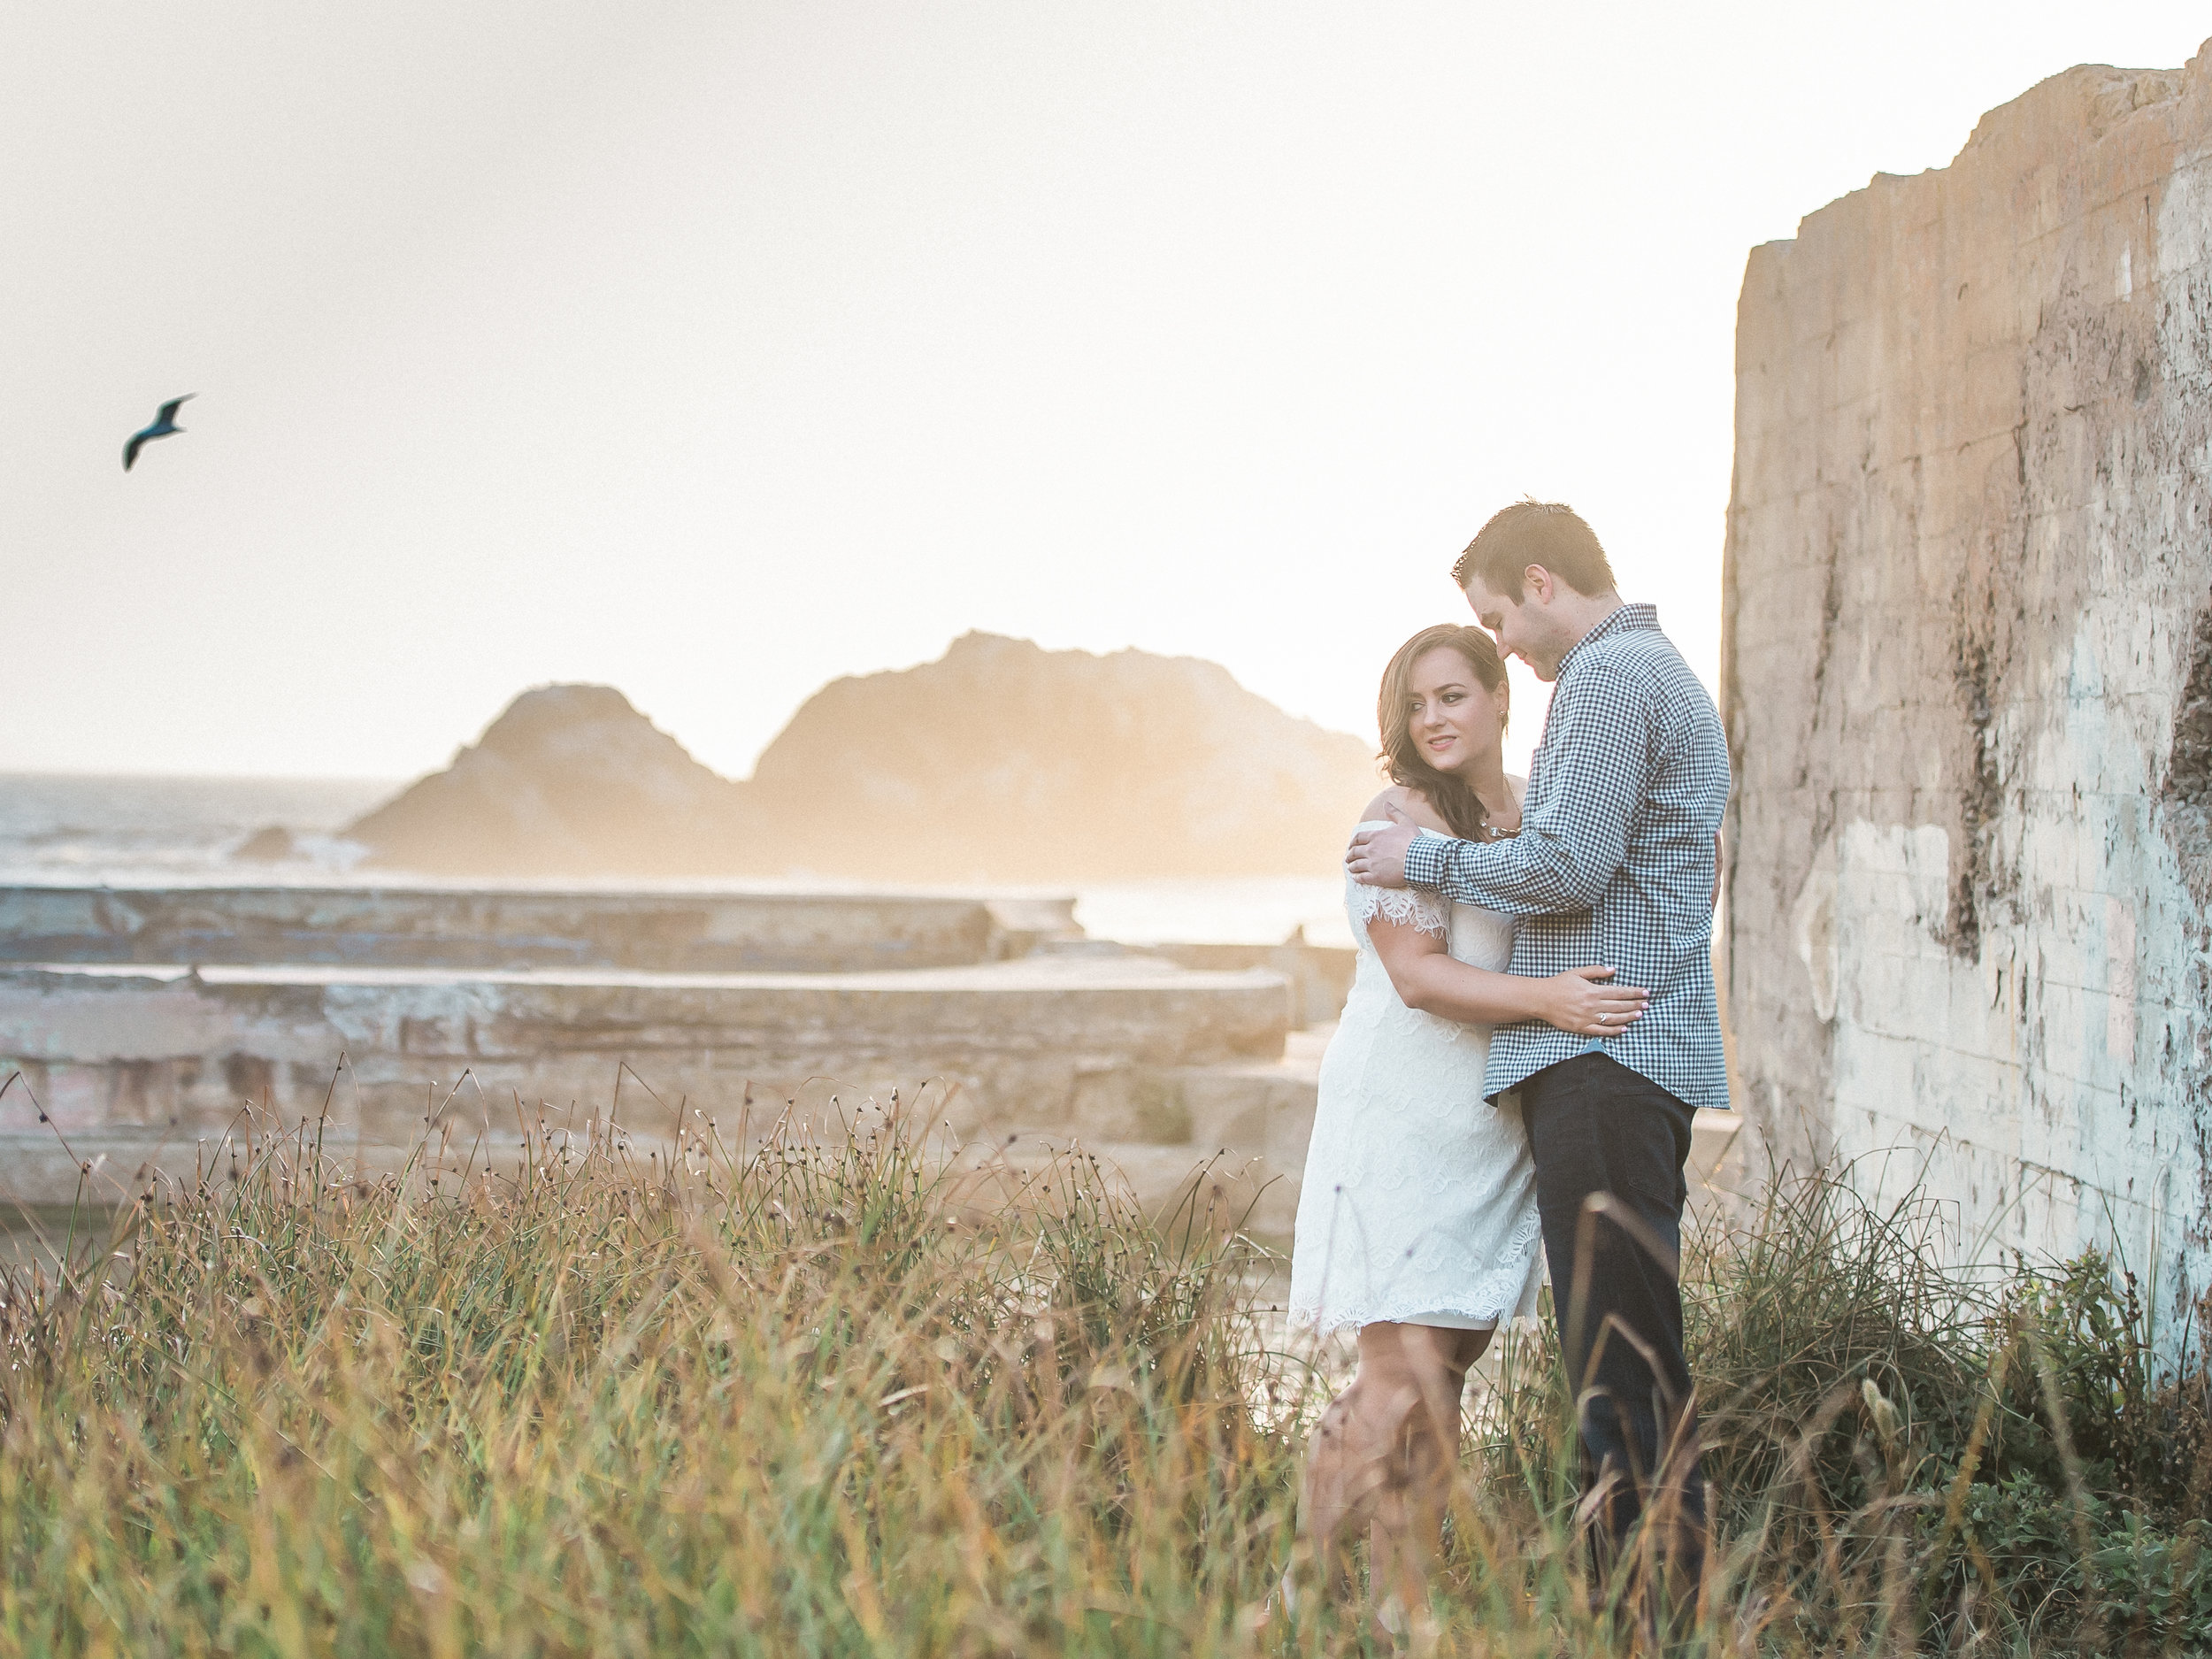 Megan+David_Engagement_spp-41.jpg